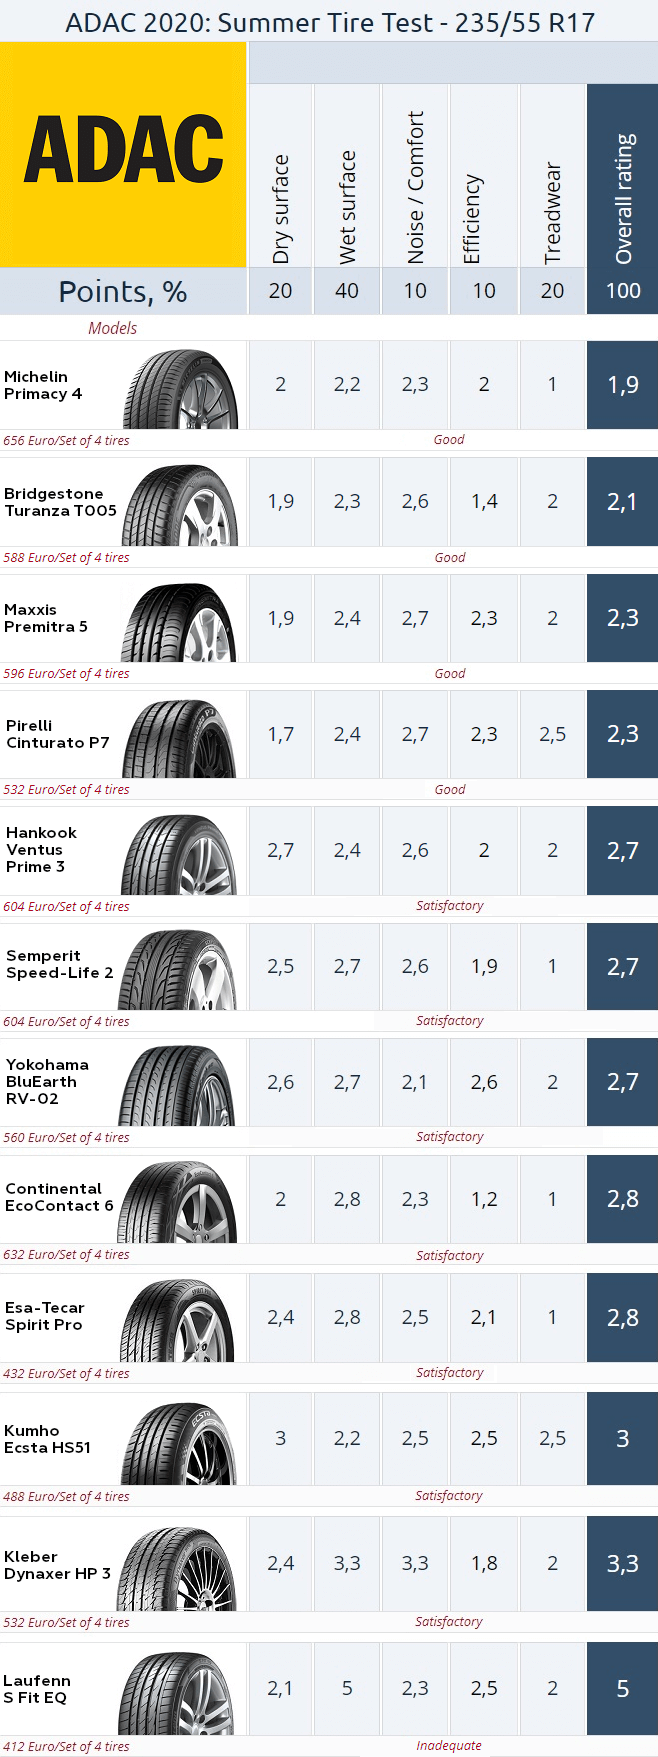 Result summary. ADAC 235/55 R17 Summer Tire Test 2020 (click to enlarge)